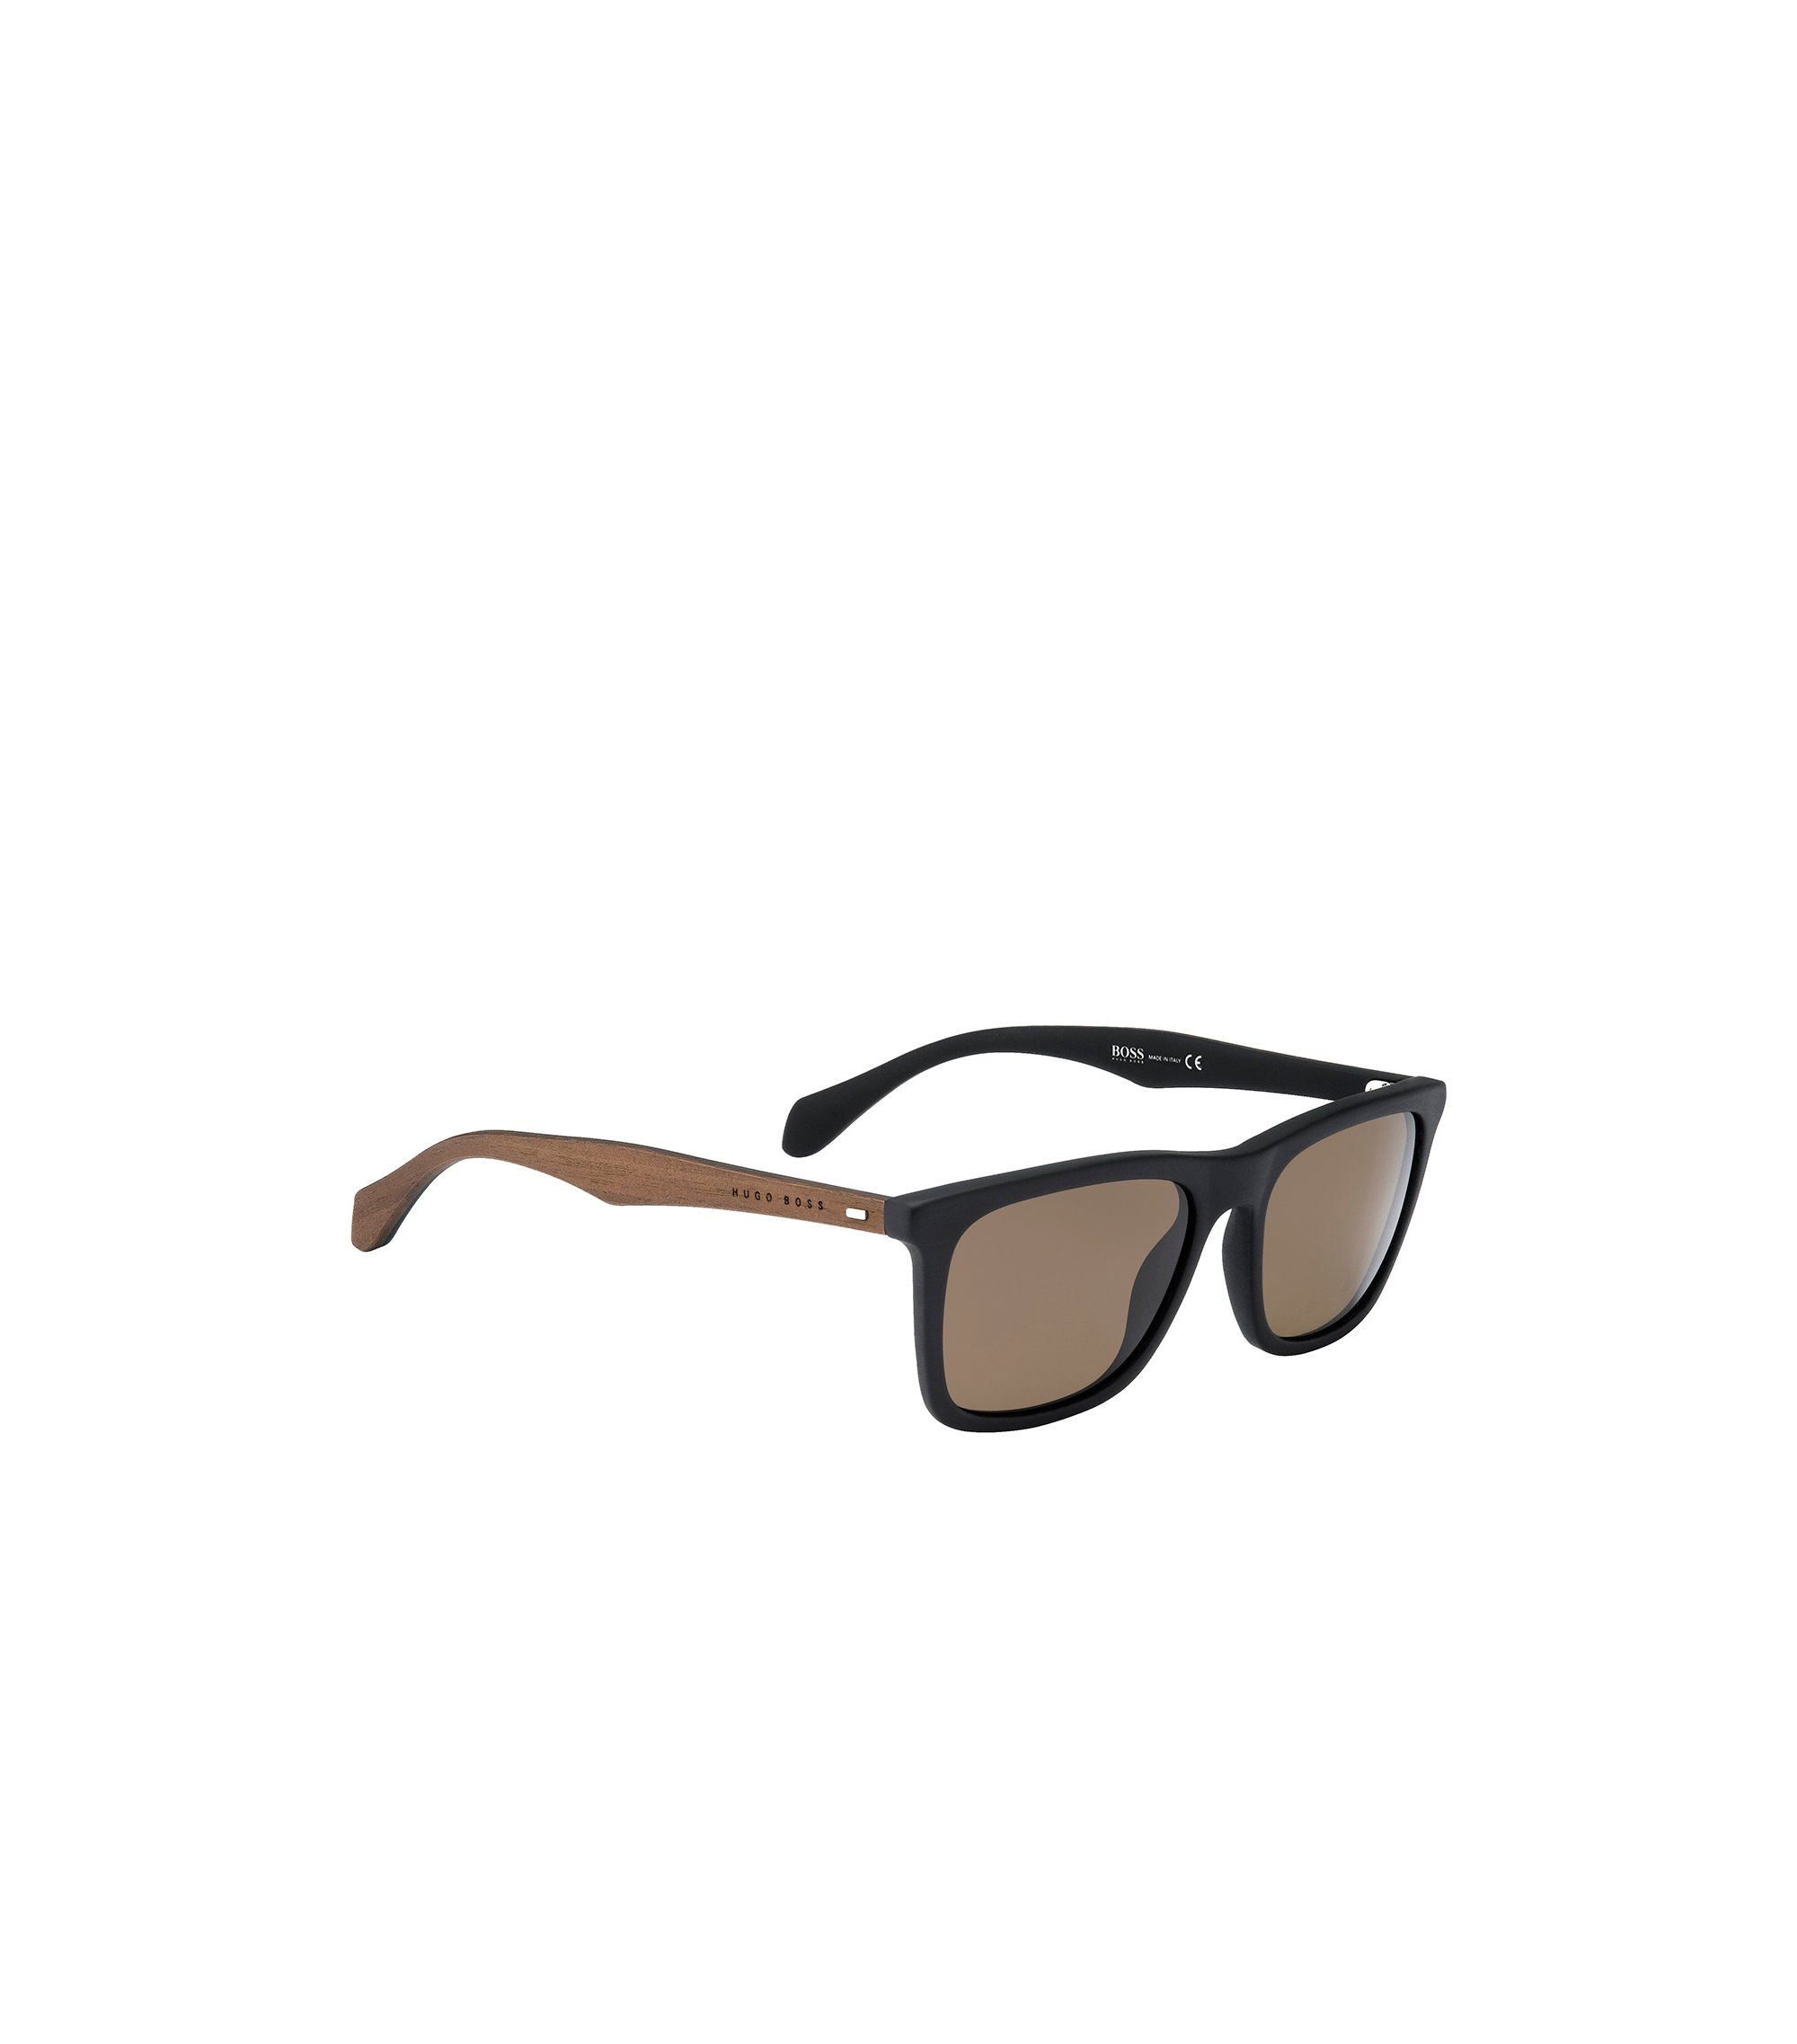 Bronze Polar Lens Rectangular Sunglasses | BOSS 0776S, Assorted-Pre-Pack